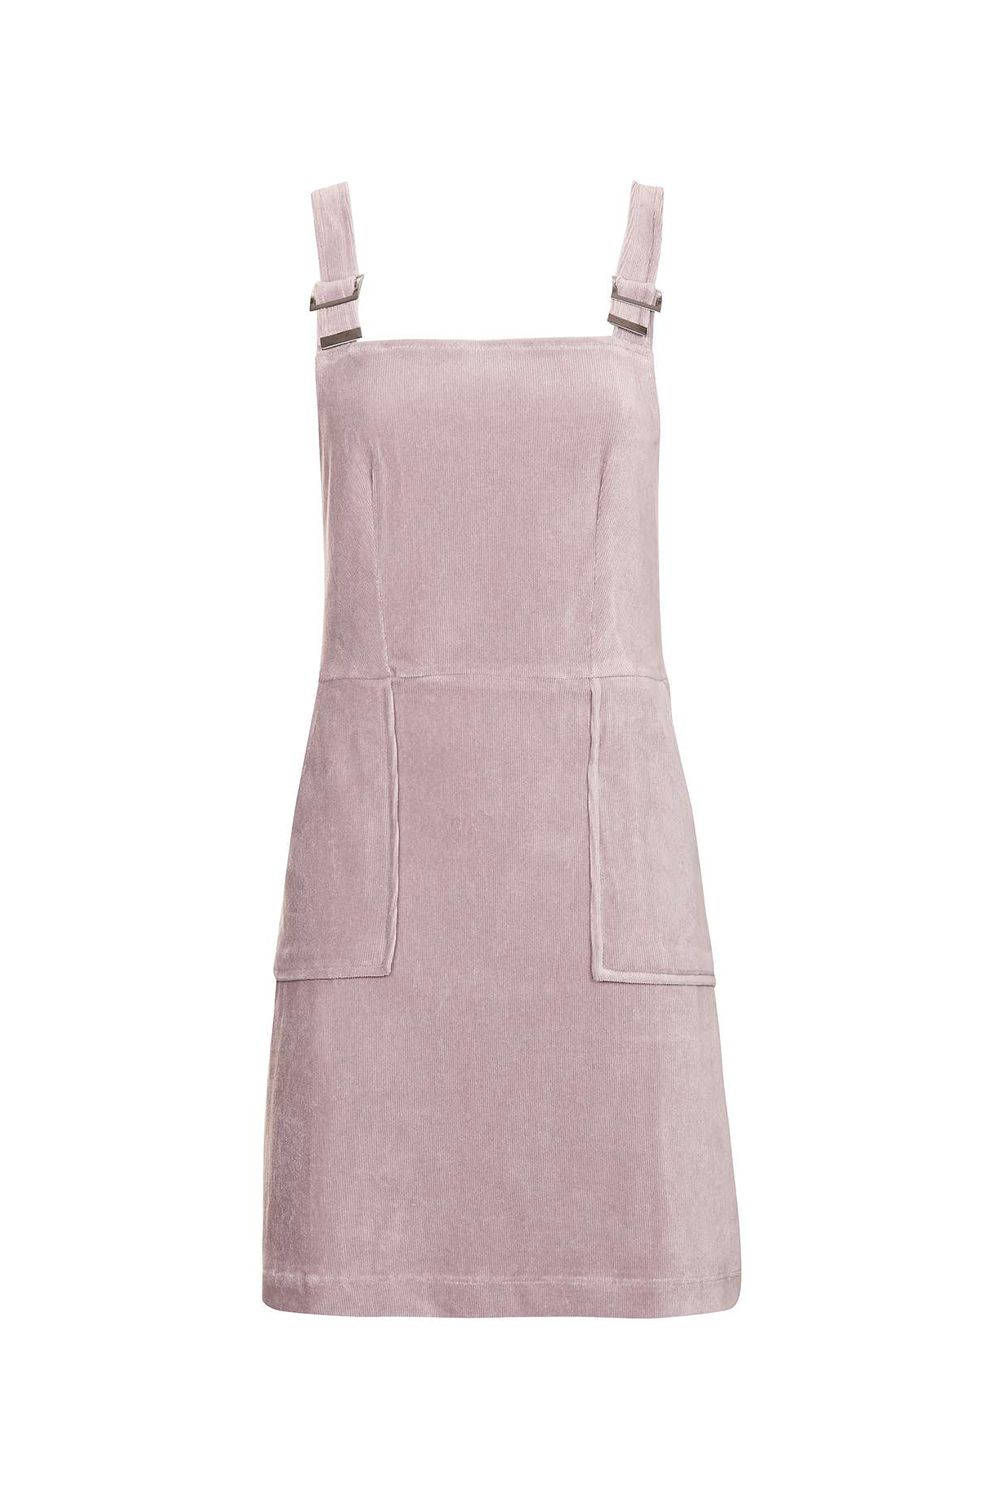 """<p>Ditto for this cotton candy pink *velvet* version. Pair it with <a href=""""http://www.marieclaire.com/fashion/news/g4061/socks-with-sandals-really/"""" target=""""_blank"""" data-tracking-id=""""recirc-text-link"""">high socks and sandals</a> for an extra street-style kick.</p><p><strong data-redactor-tag=""""strong"""">Cord Velvet Pinafore Dress, $58;<a href=""""http://us.topshop.com/en/tsus/product/cord-velvet-pinafor-dress-6121589?geoip=noredirect&cmpid=ppc_pla_US_ip&istCompanyId=da794a11-99cb-4206-8e52-61037452aeeb&istItemId=xwawiitrwt&istBid=tztx&gclid=CjwKEAiArbrFBRDL4Oiz97GP2nISJAAmJMFafhzIh4i20iDpOi-I8x1vuTk7ieNE06yQ0k_GrTAtzxoCafzw_wcB"""" target=""""_blank"""" data-tracking-id=""""recirc-text-link"""">topshop.com</a>.</strong><span class=""""redactor-invisible-space"""" data-verified=""""redactor"""" data-redactor-tag=""""span"""" data-redactor-class=""""redactor-invisible-space""""></span><br></p>"""